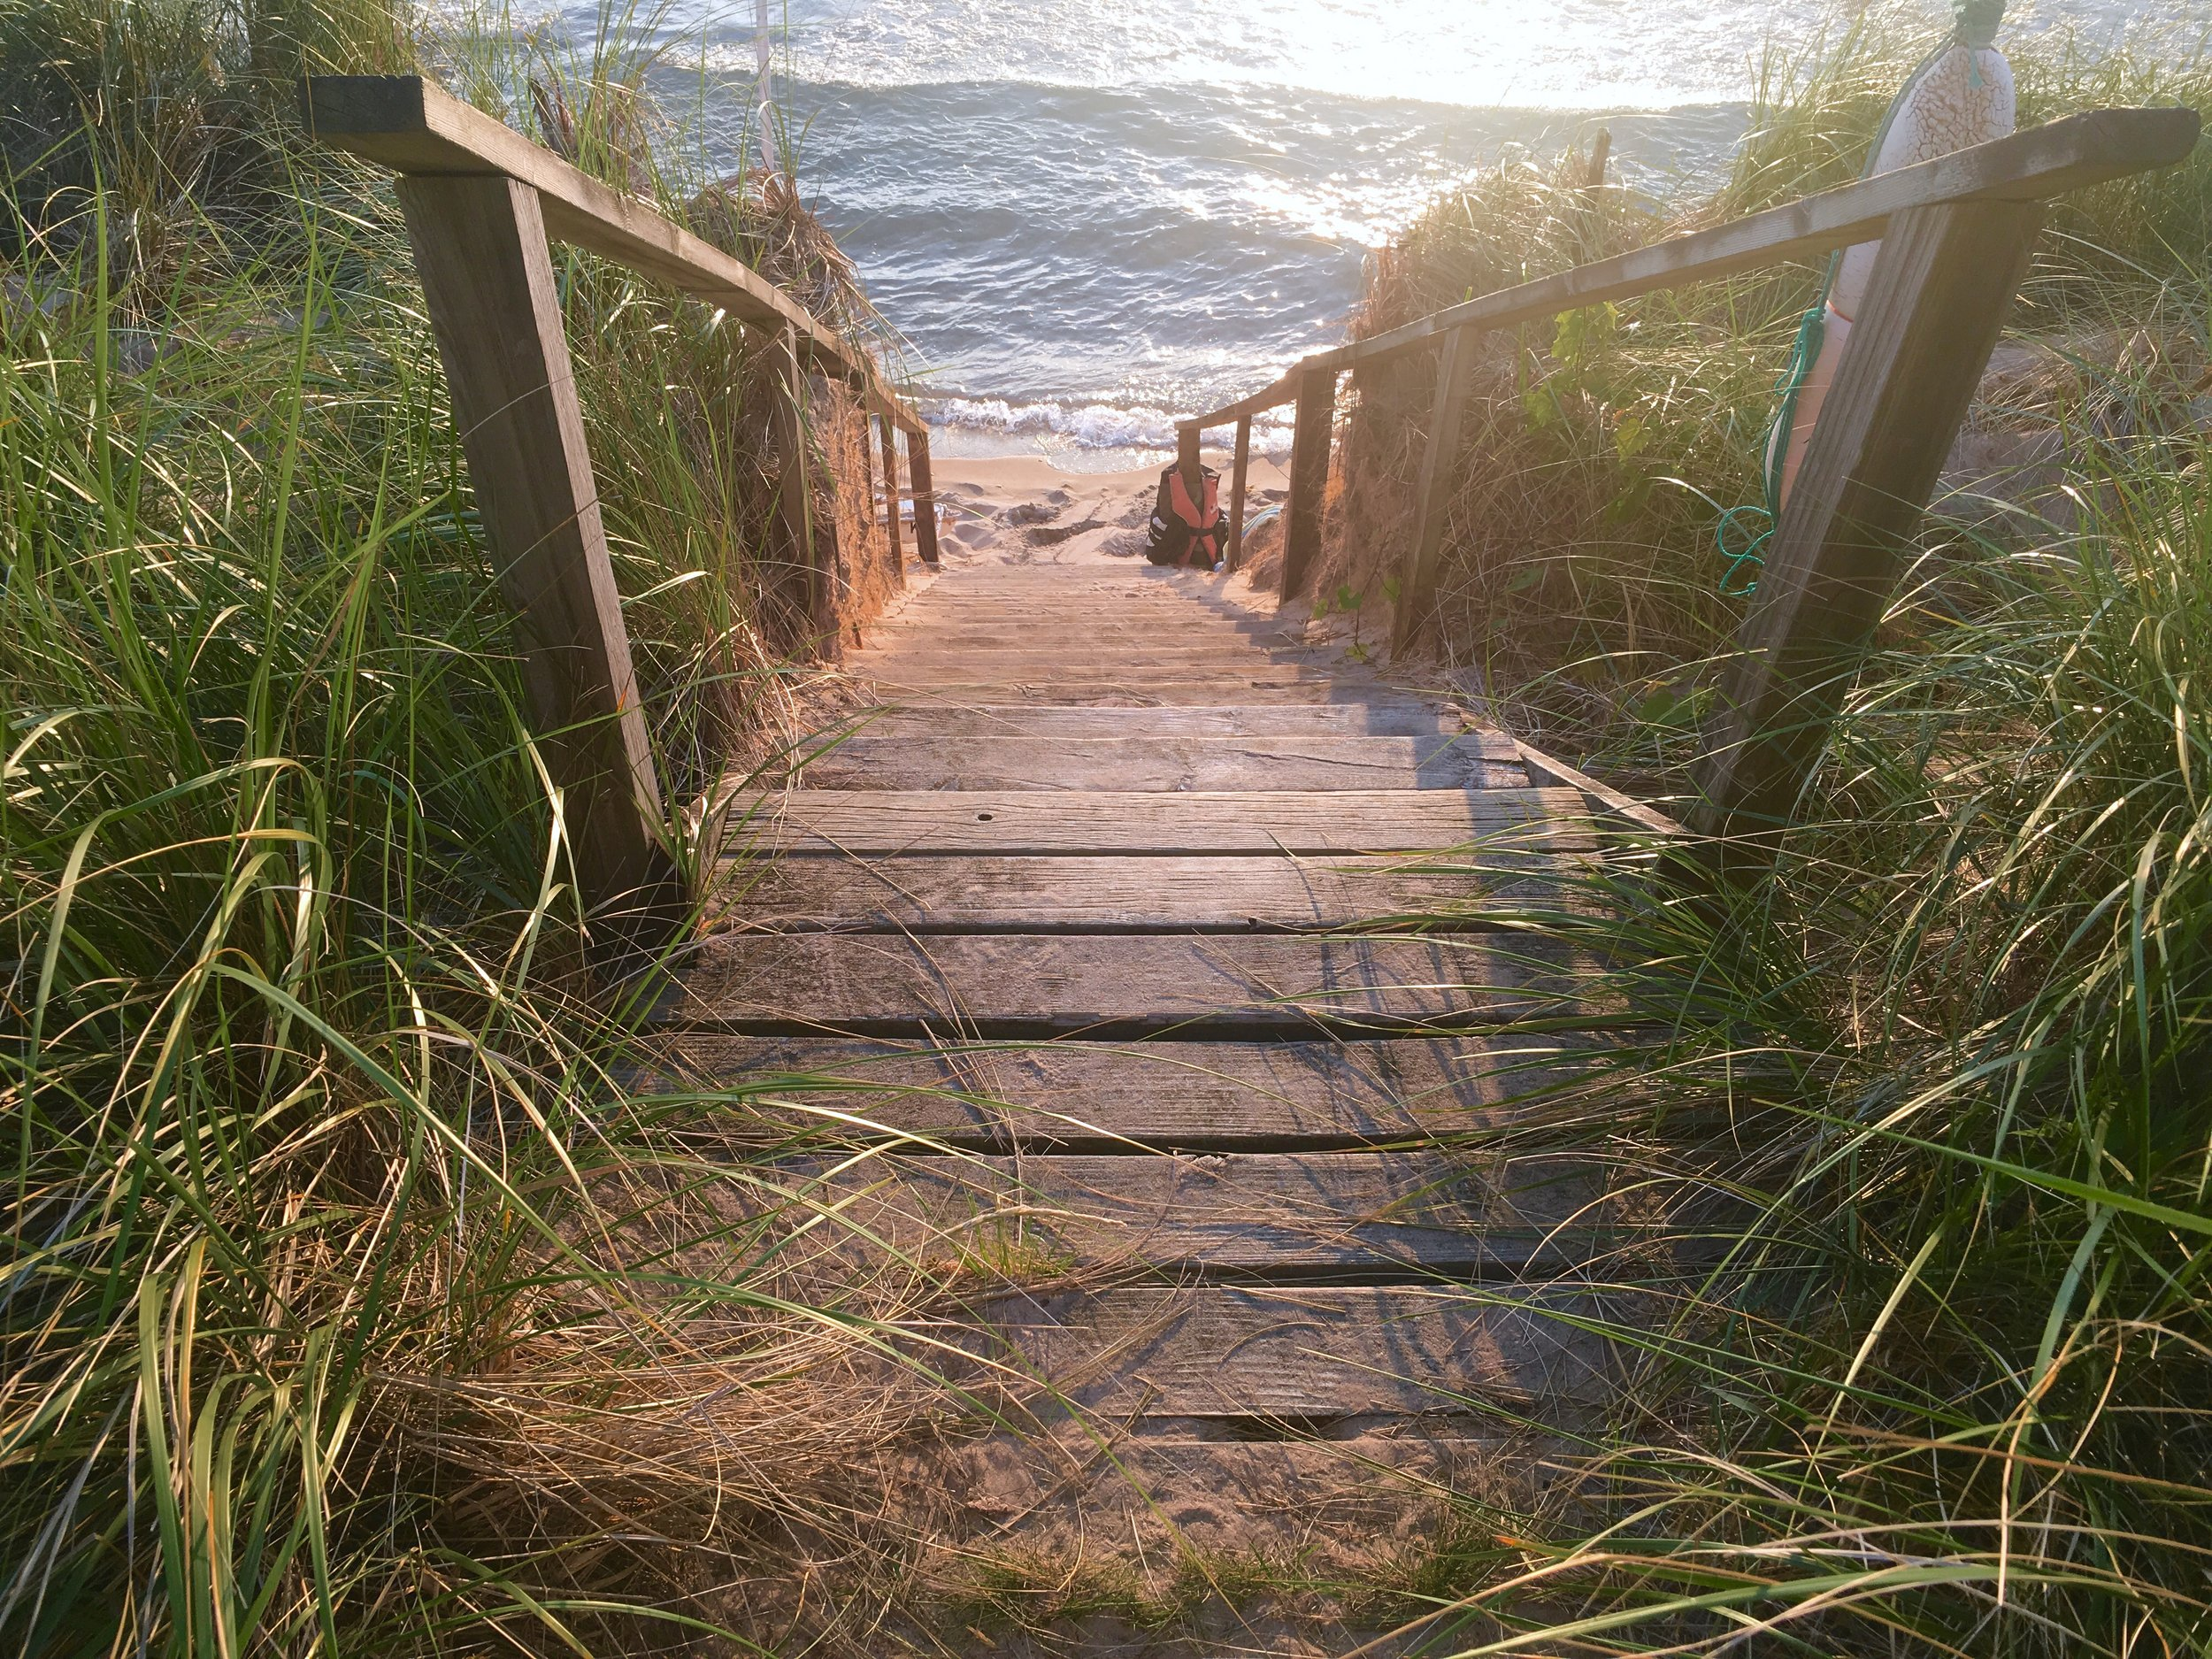 """Every year the winter and the water levels determine the size of the beach and the steepness of the climb down. This summer was the steepest I had seen it. Old stairs were unearthed from the sand by a group of """"the grandchildren."""""""